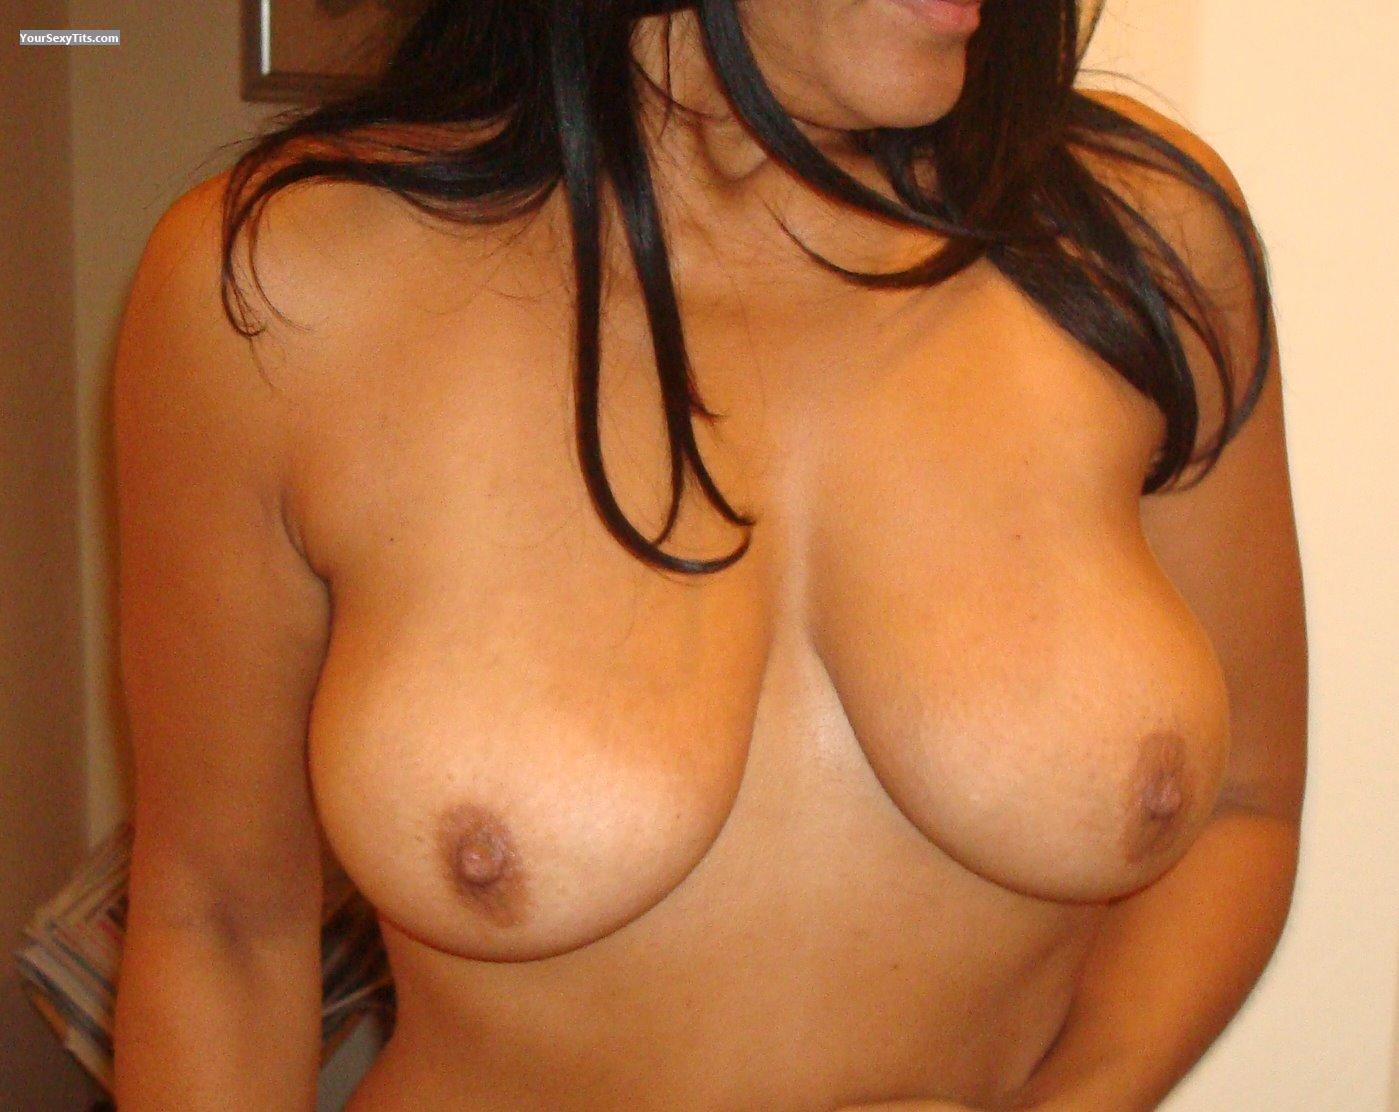 Tit Flash: Big Tits - Latinasexlady from Spain